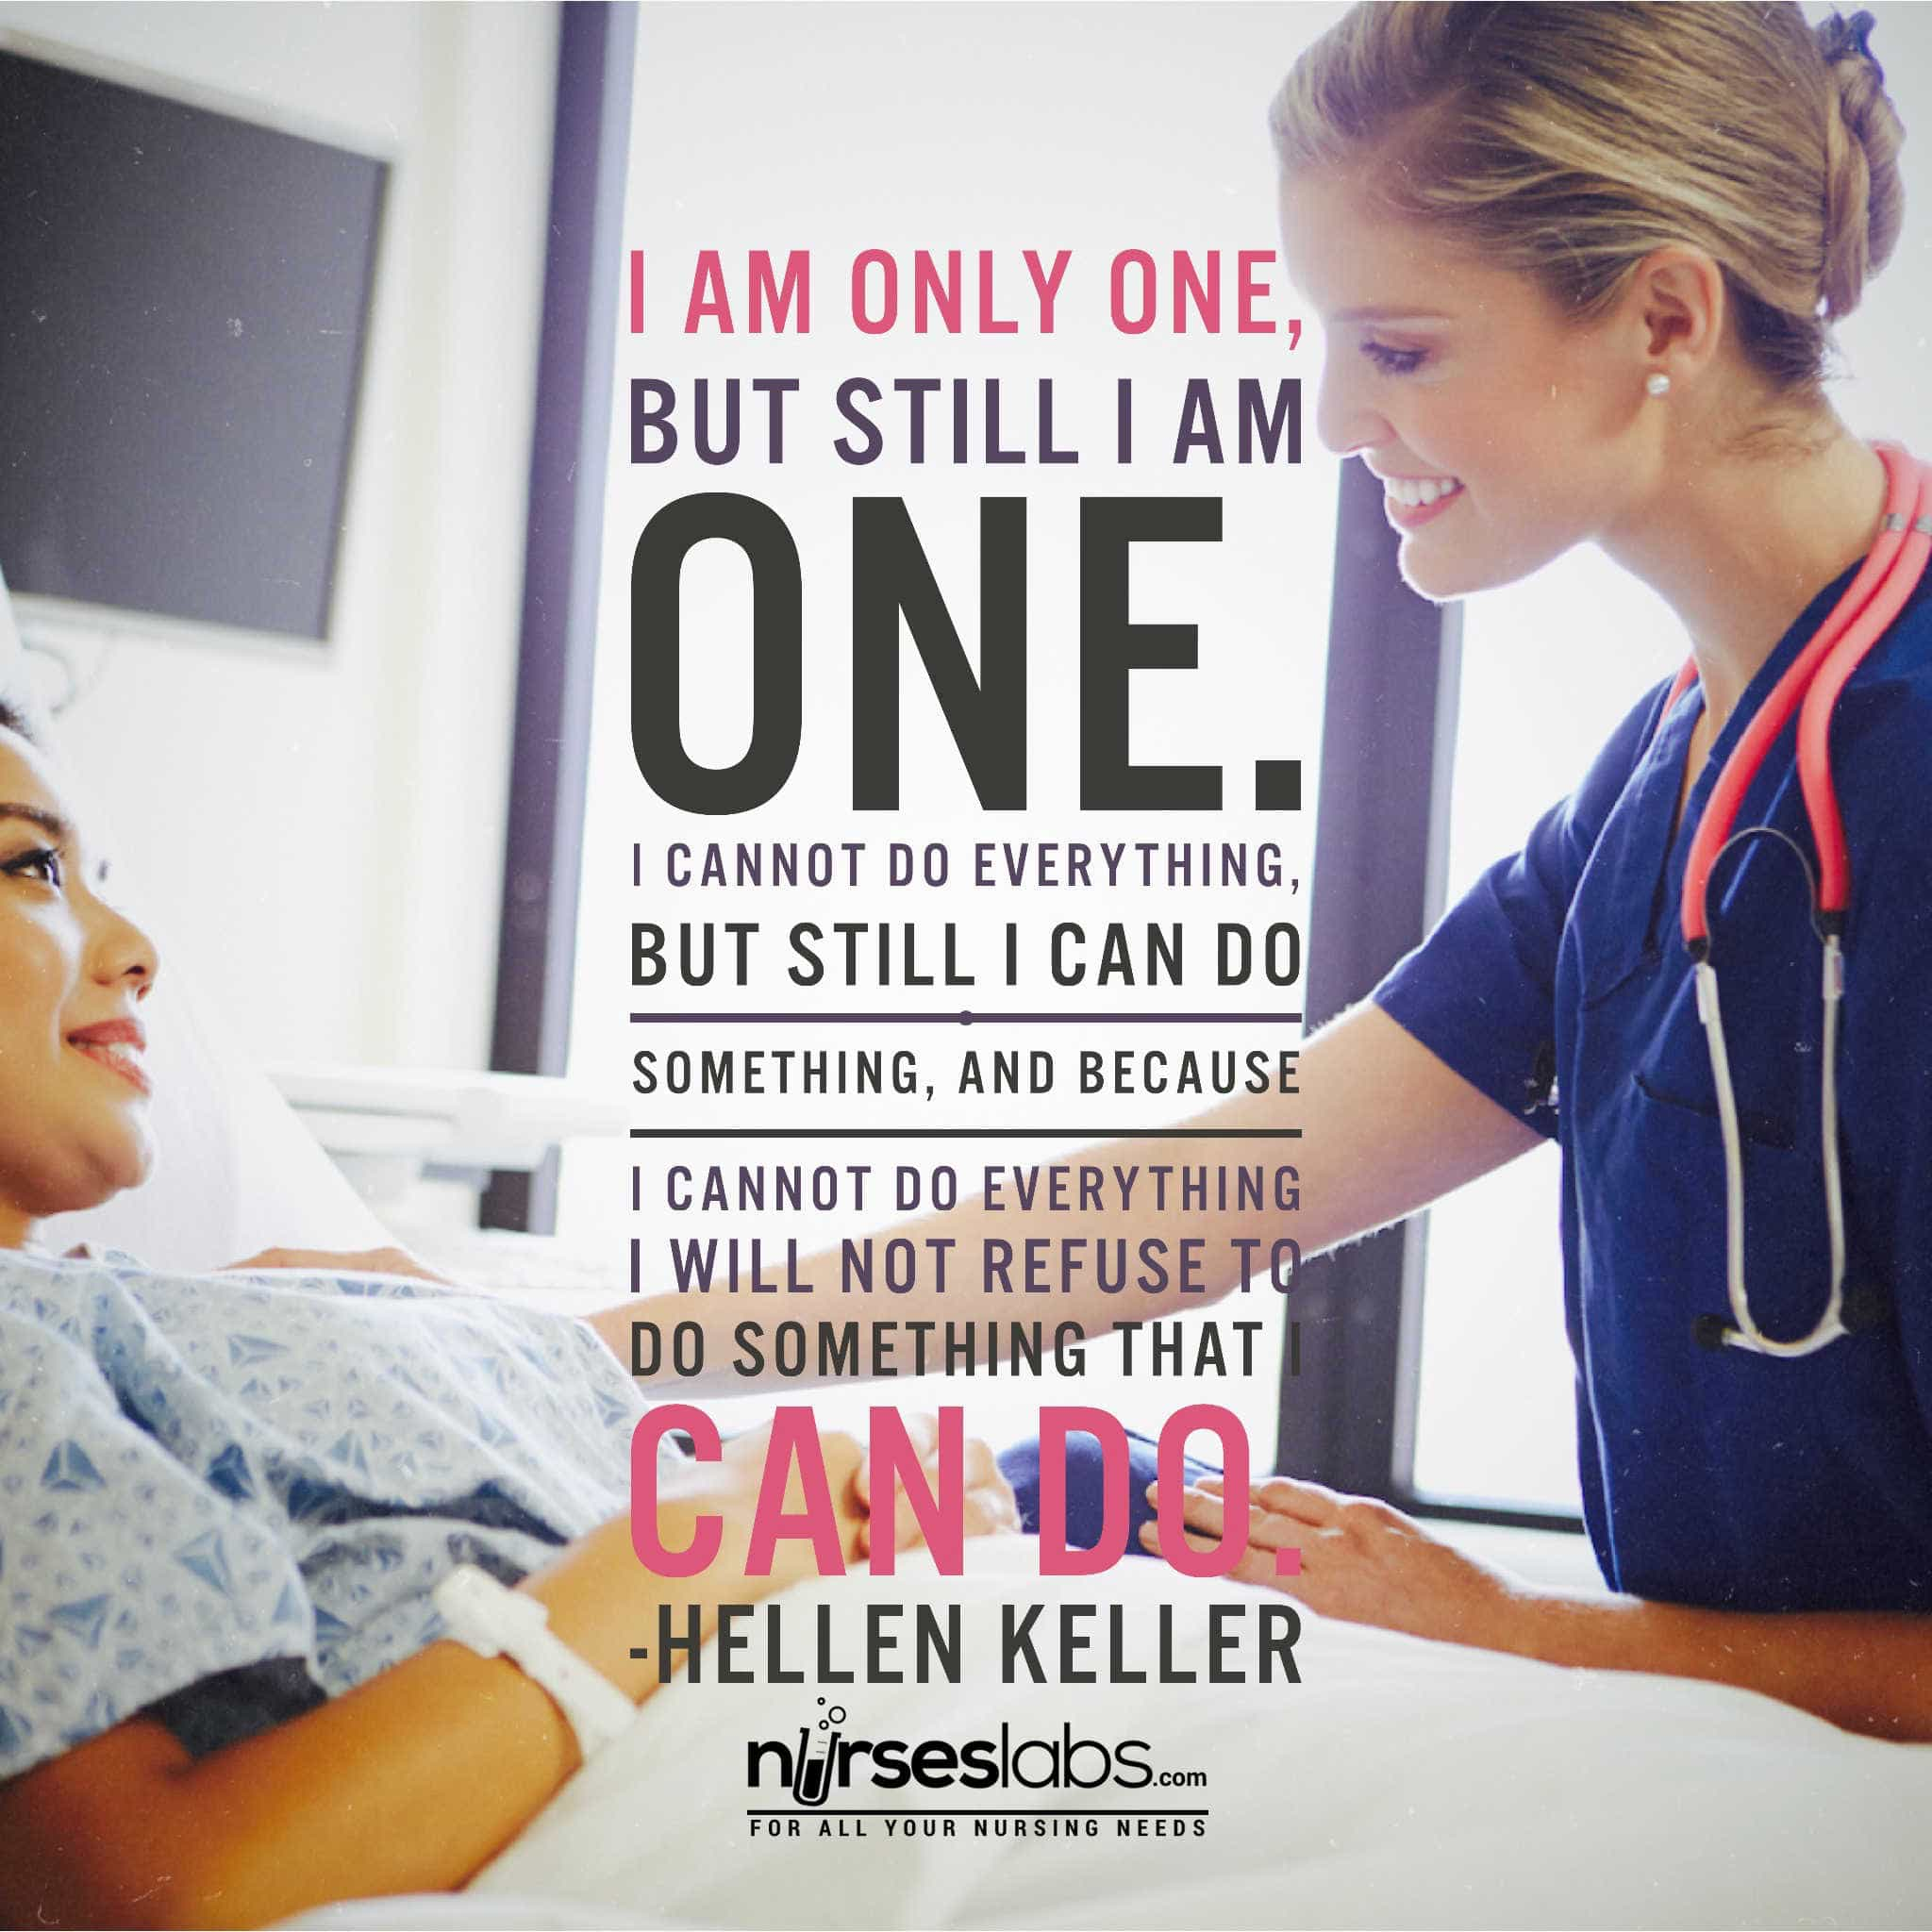 I am only one, but still I am one. I cannot do everything, but still I can do something, and because I cannot do everything I will not refuse to do something that I can do. - Helen Keller